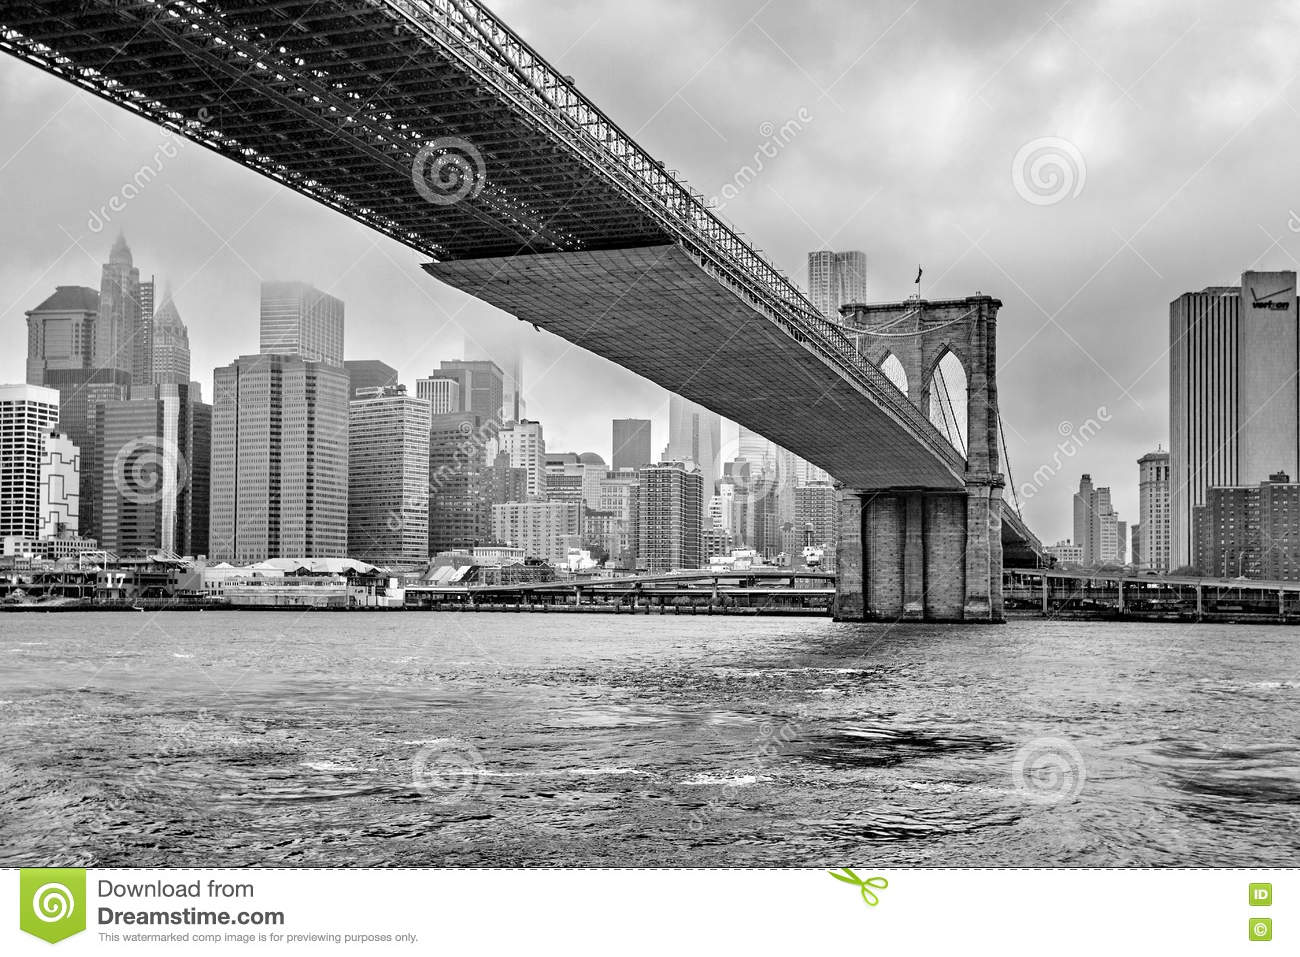 Mistig Manhattan - de horizon van Manhattan en de Brug van Brooklyn, Manhattan, New York, Verenigde Staten